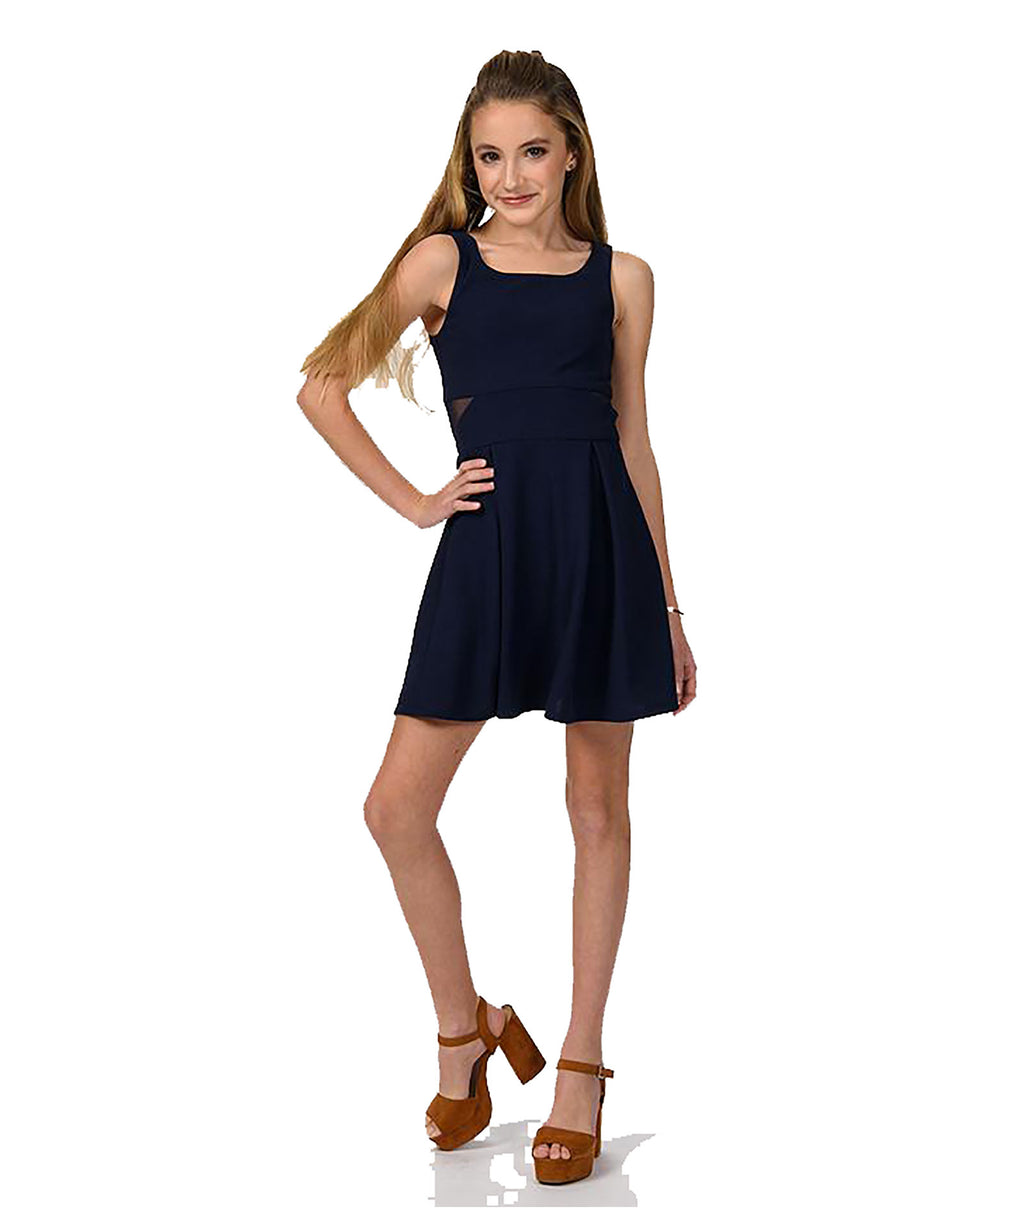 Sally Miller Hope Navy Dress